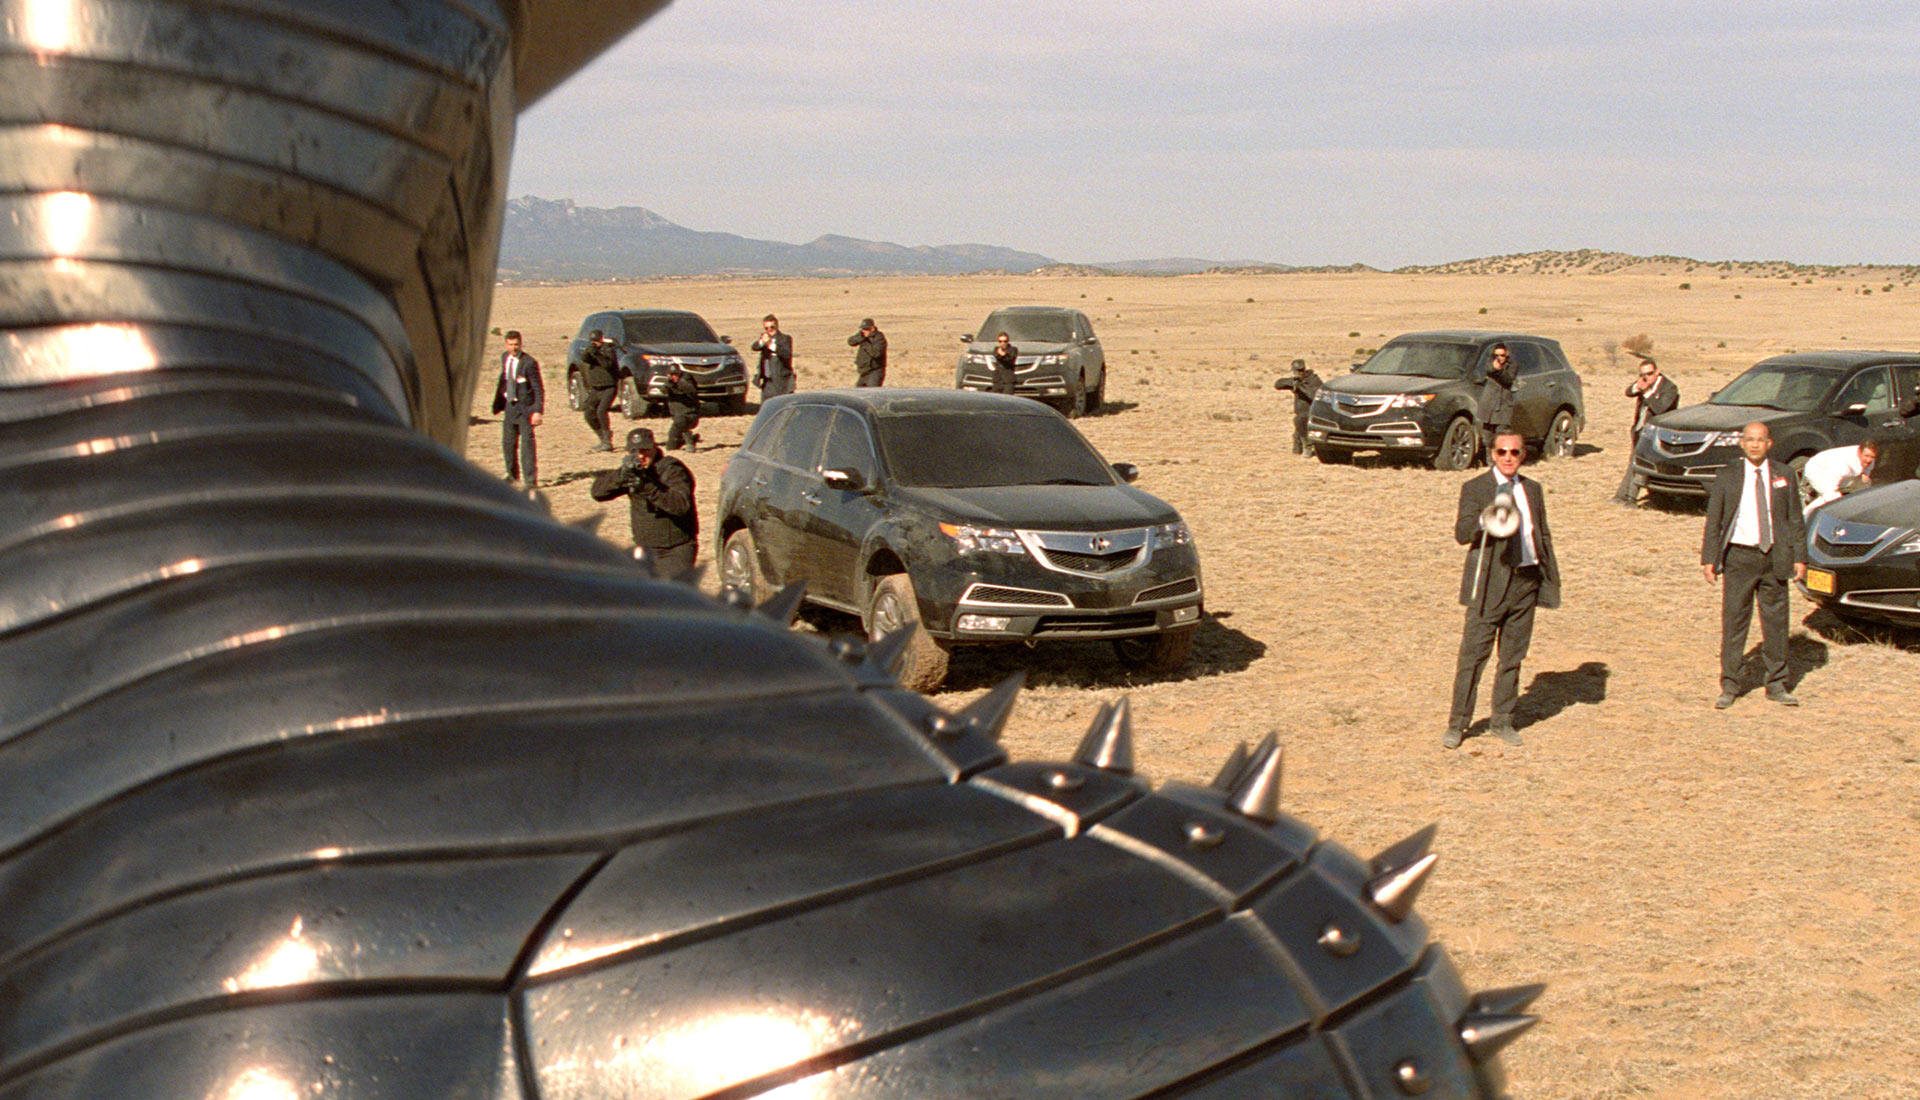 I've also seen some great comments and questions that i immediately want to jump in and respond to. Marvel Wallpaper B Q Vehicle Natural Environment Car Desert Landscape Mode Of Transport Off Roading Aeolian Landform Mitsubishi Pajero Off Road Vehicle 1889443 Wallpaperkiss